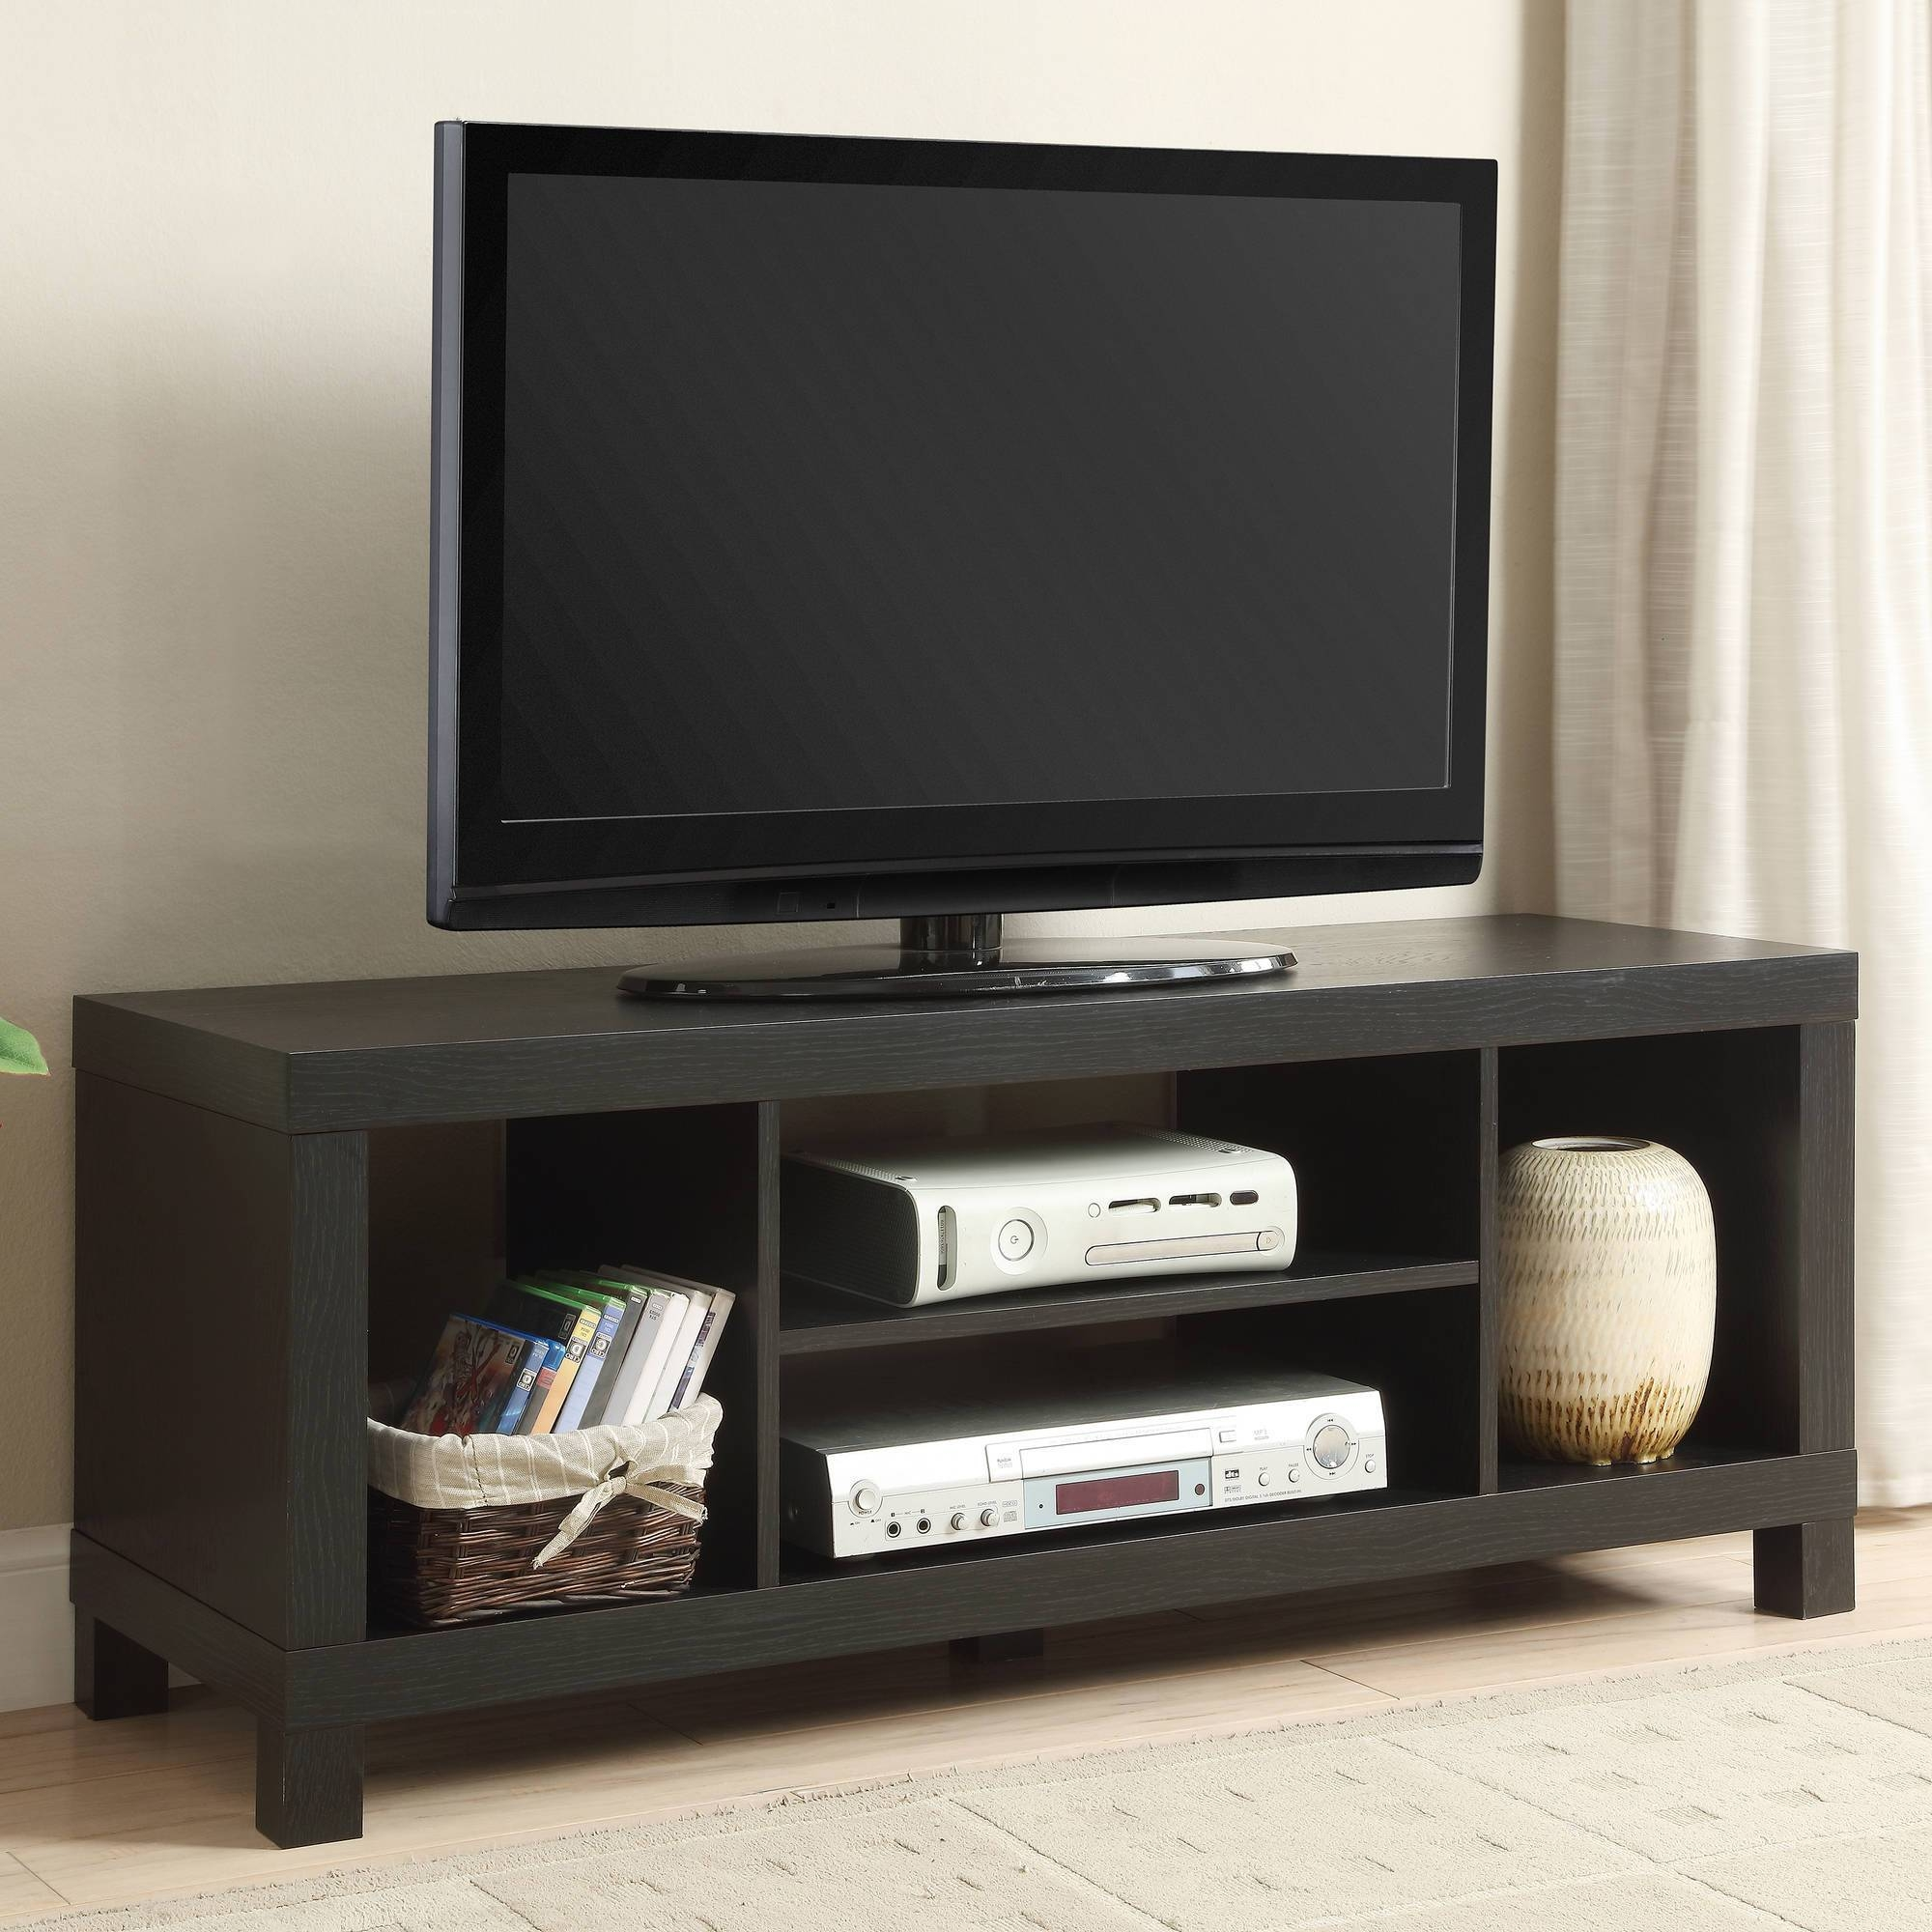 "Black Oak Tv Stand For Tvs Up To 42"" - Walmart in Long Low Tv Stands (Image 2 of 15)"